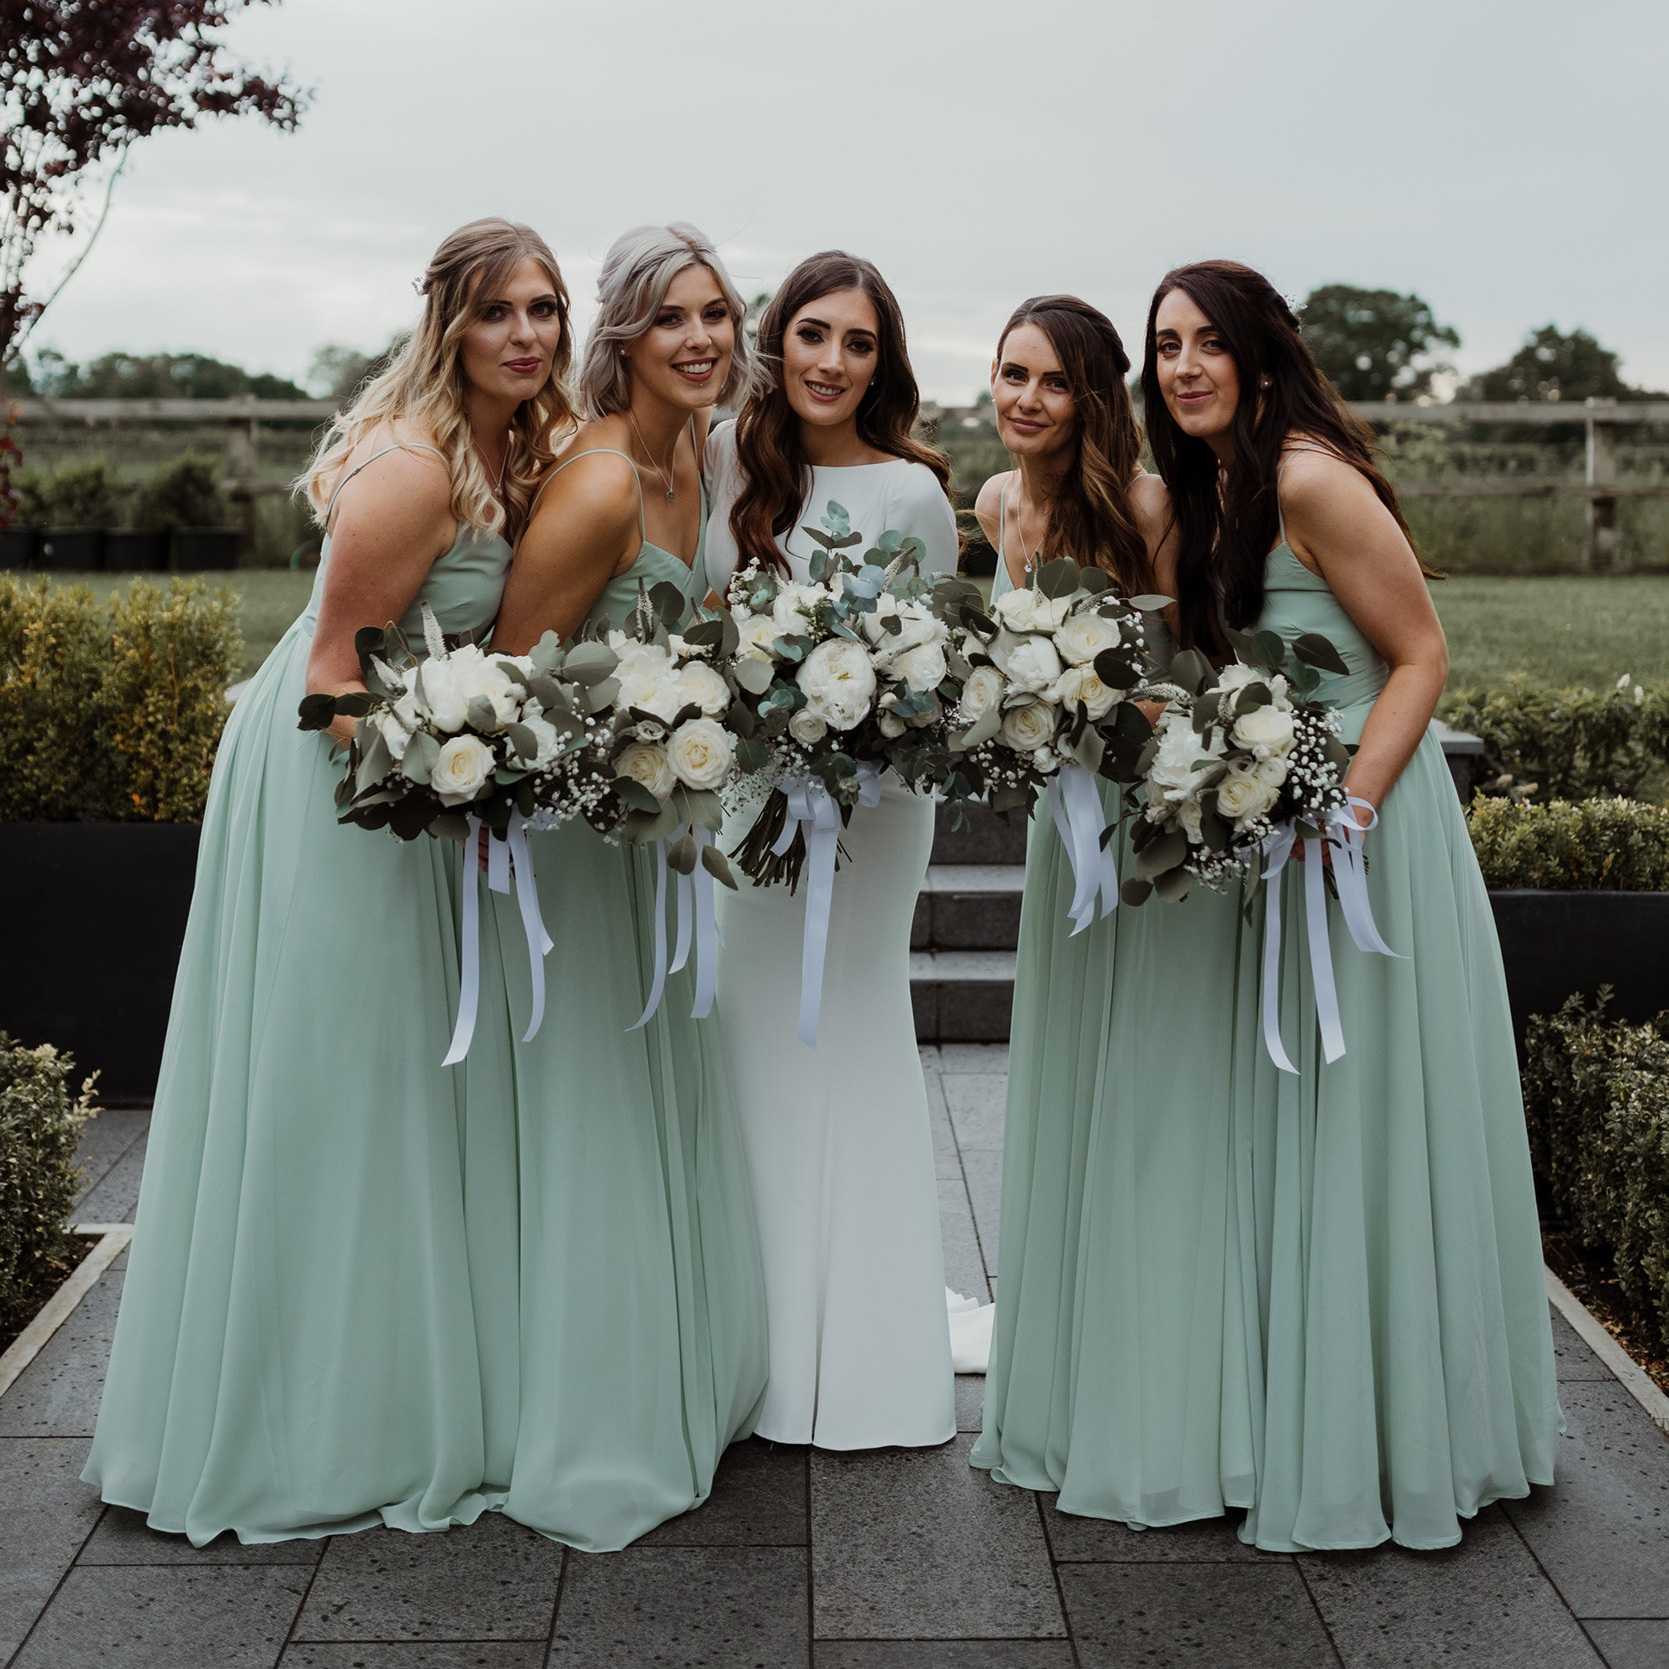 Shani and her best girls wearing Edie in Pistachio - Photo Petal & Blush Artistry